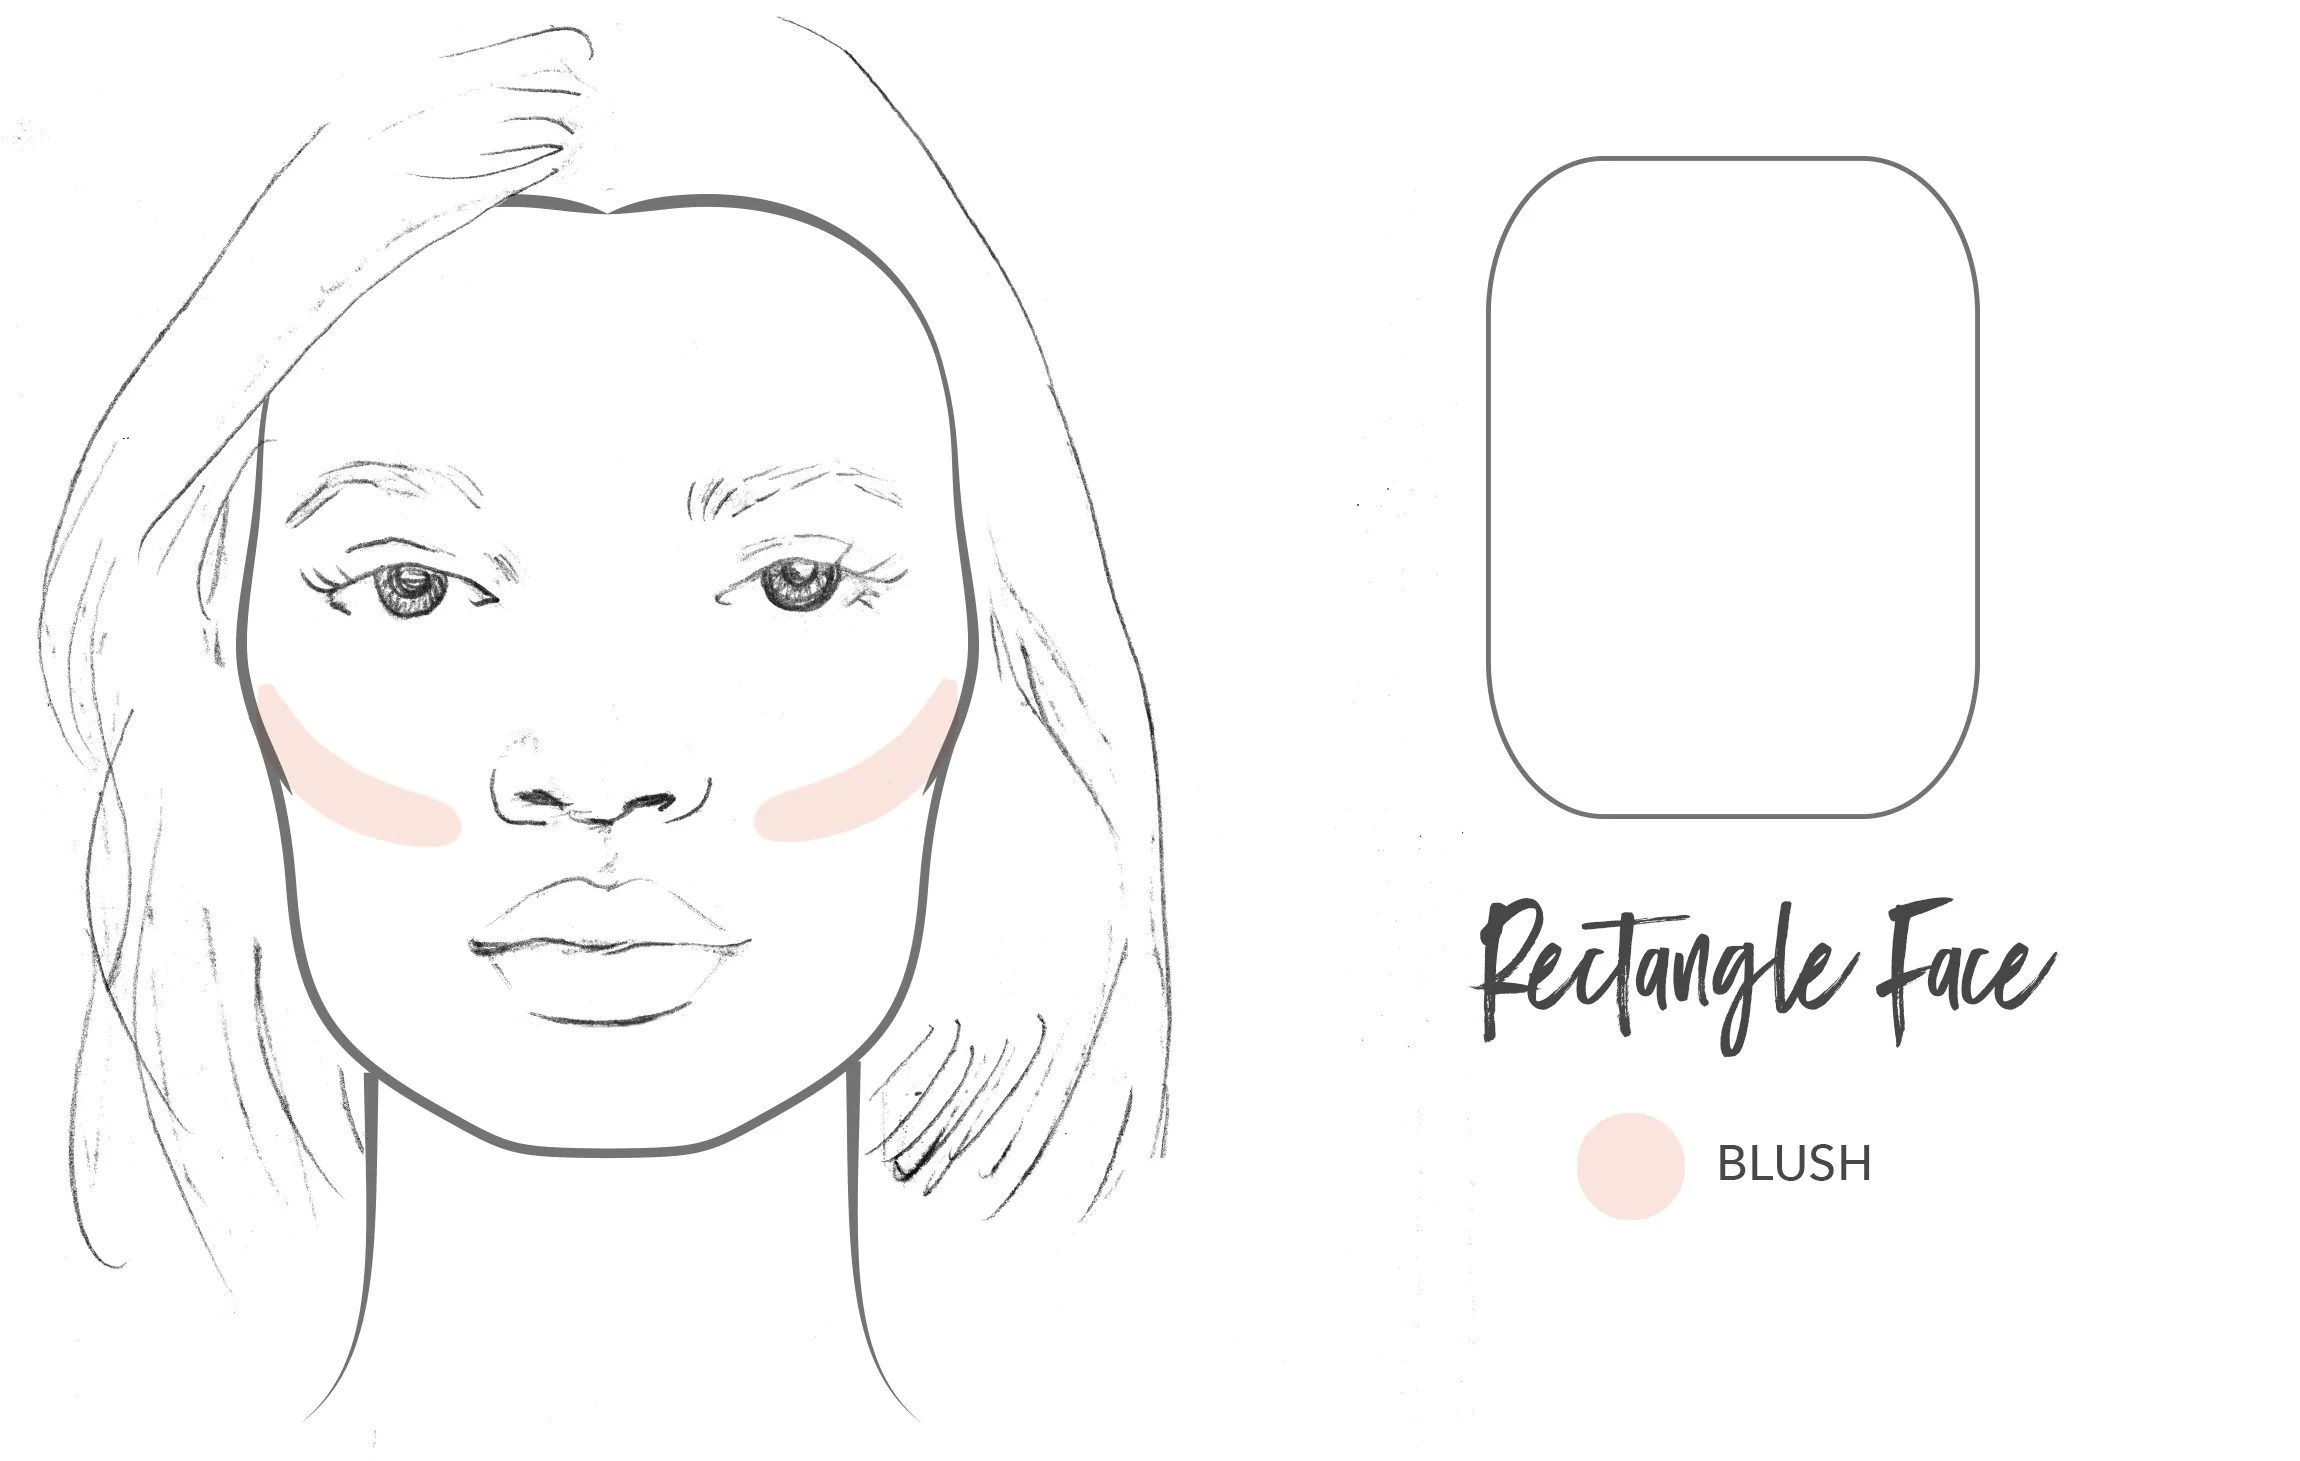 How to Choose the Perfect Natural Blush for Your Skin Tone